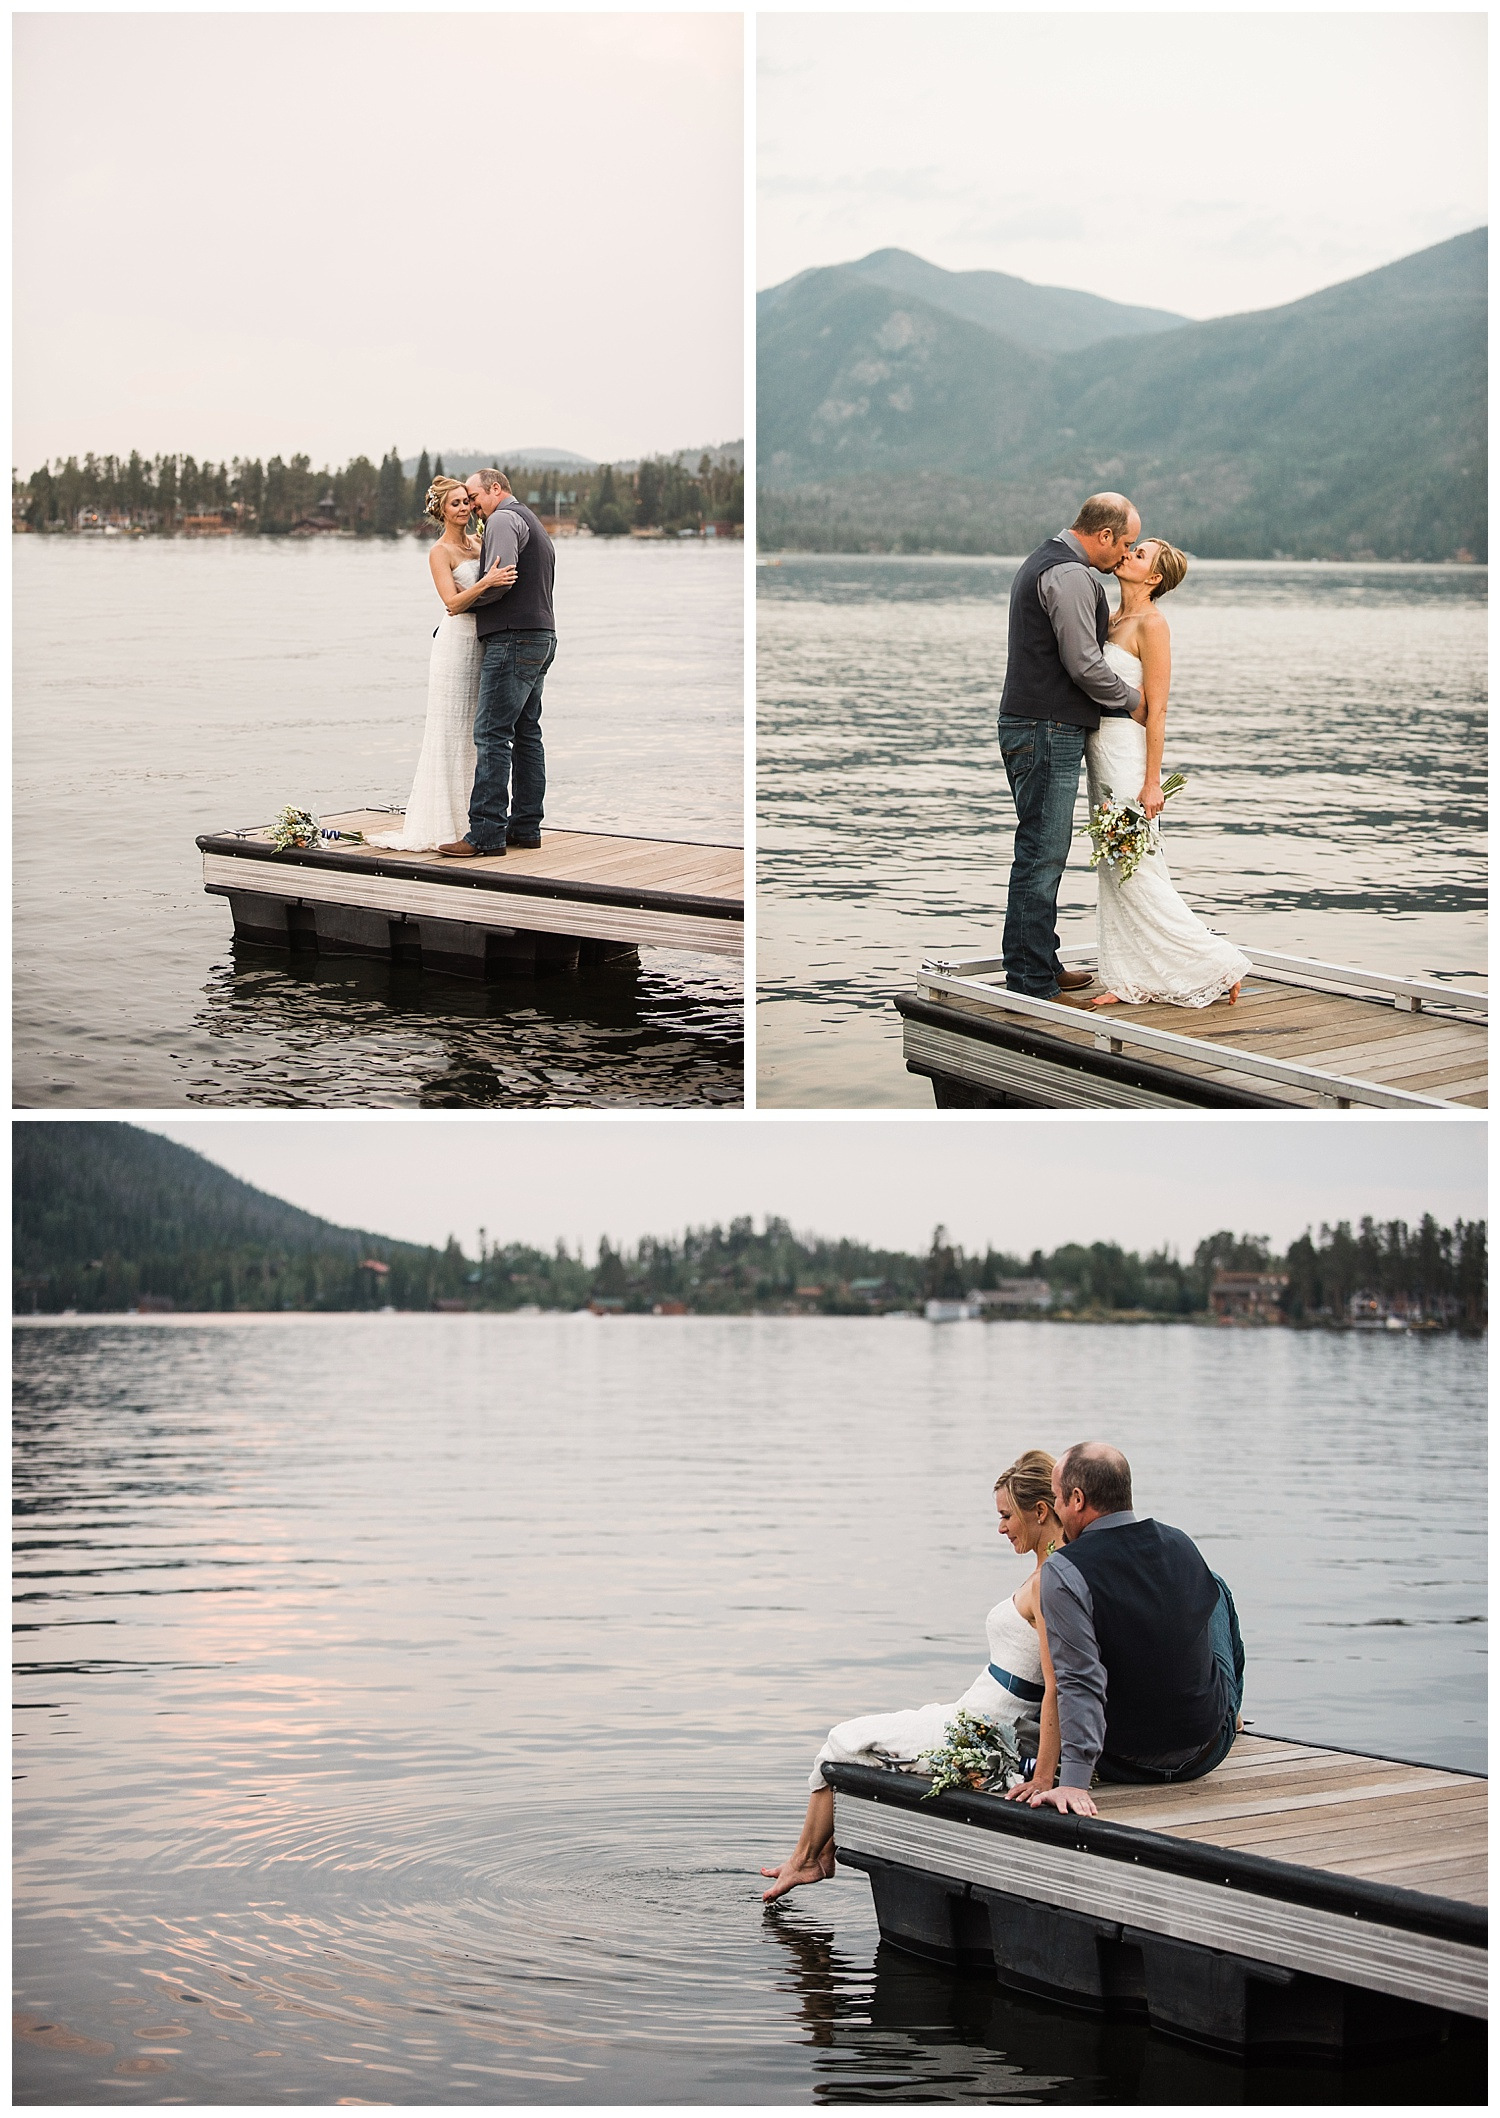 Western_Riviera_Wedding_Venue_Lake_Grandby_Colorado_Apollo_Fields_43.jpg